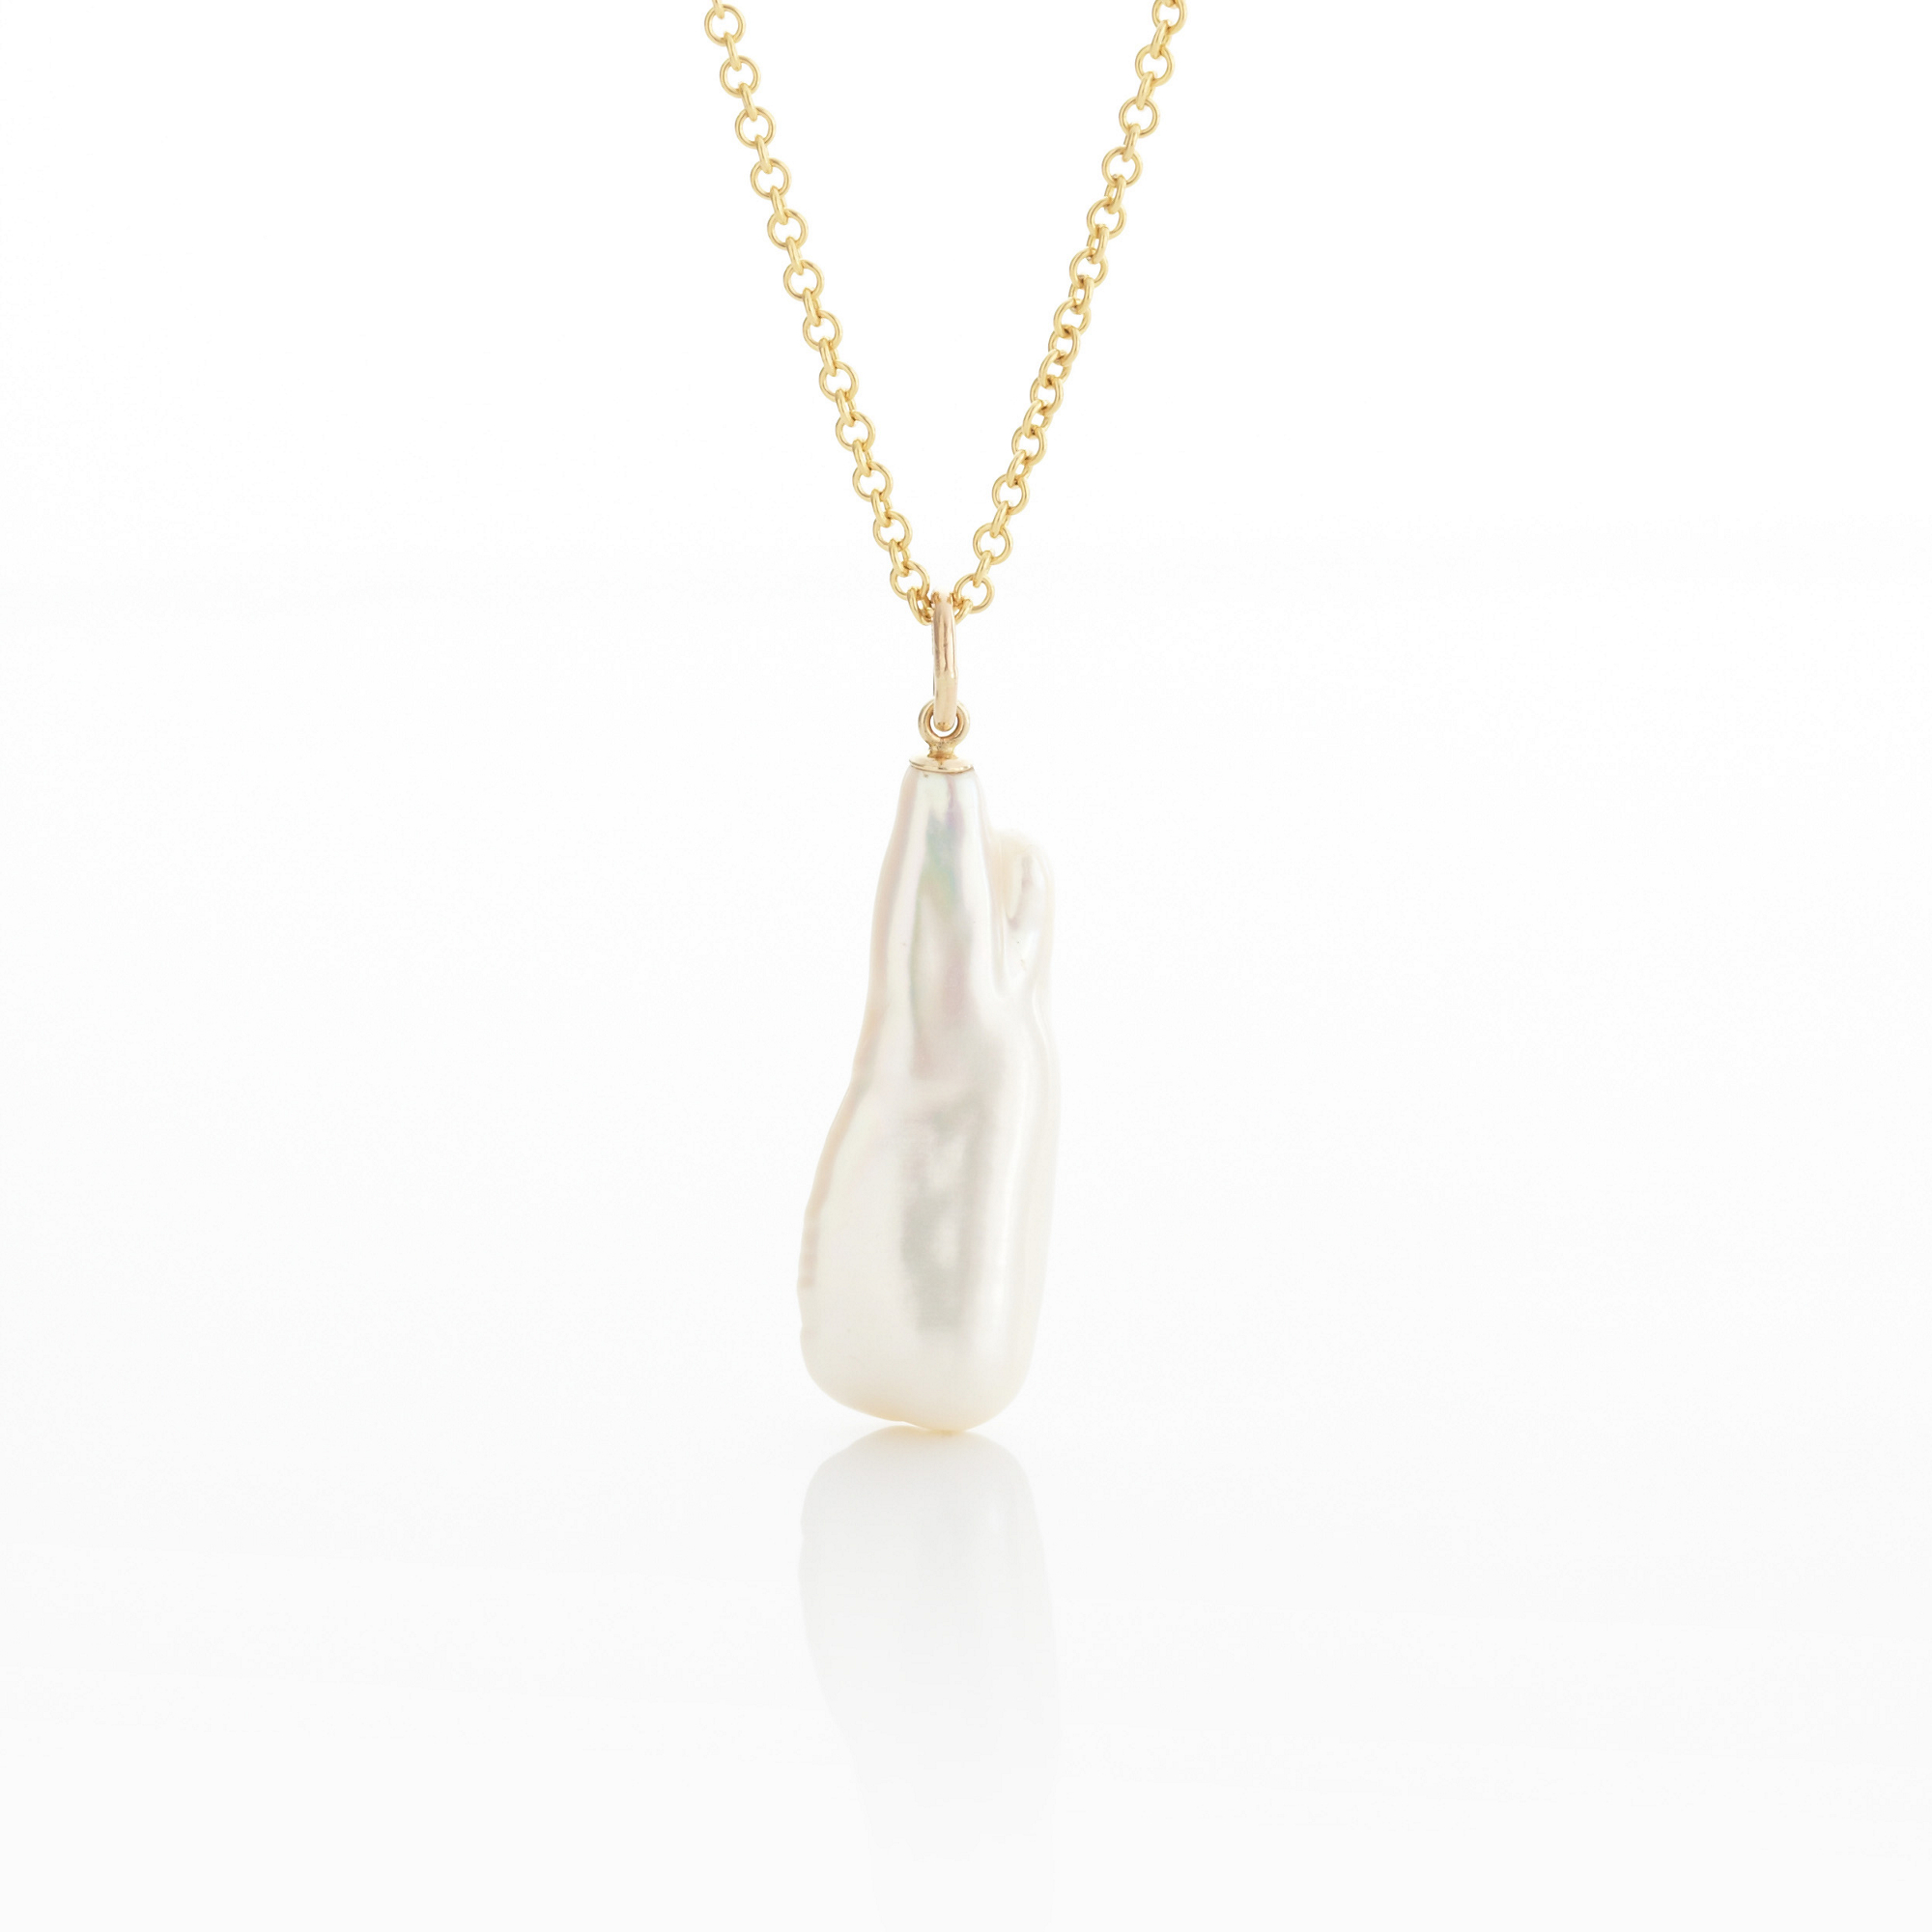 Gump's Elongated Baroque Pearl Pendant